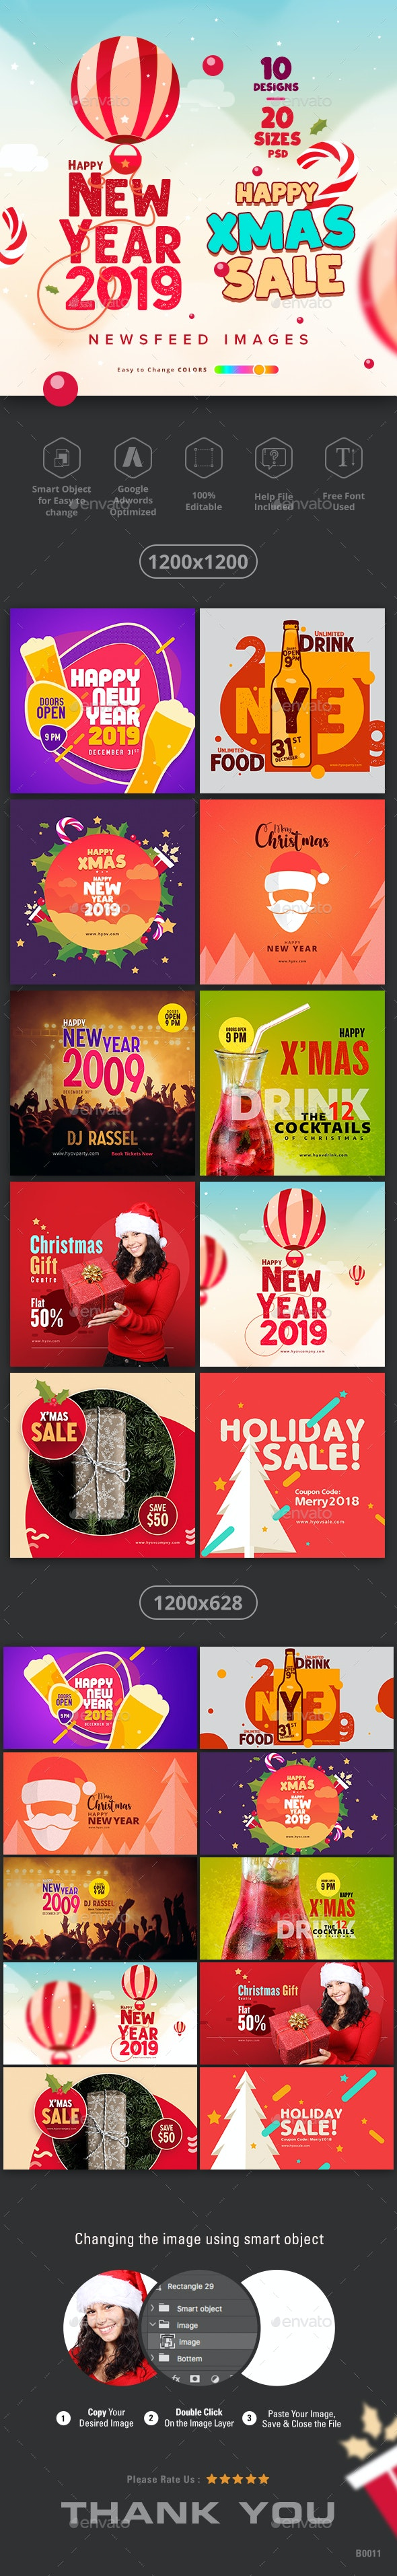 Christmas & New Year Social Media Banner Pack - 20 Banners - Miscellaneous Social Media